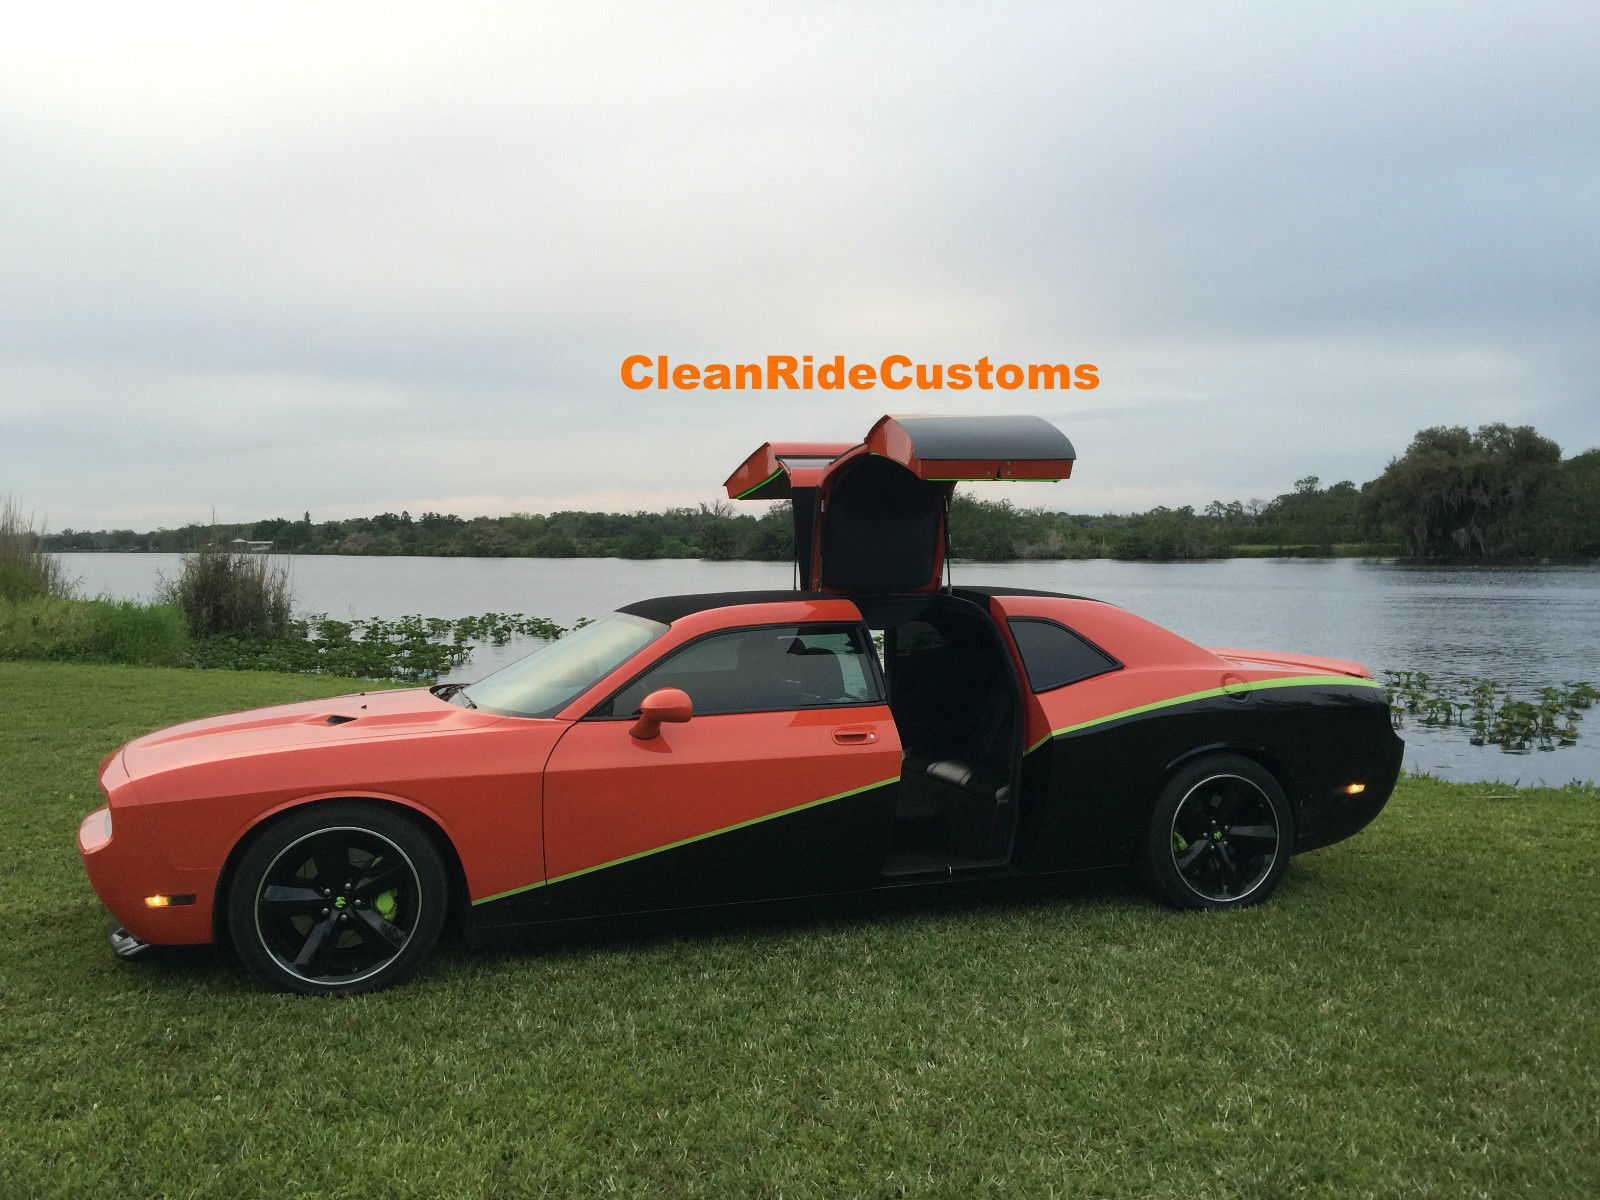 17 Charger Hellcat >> Four-Door Dodge Challenger SRT8 Has Rear Gullwing Doors, for Sale at $250,000 - autoevolution